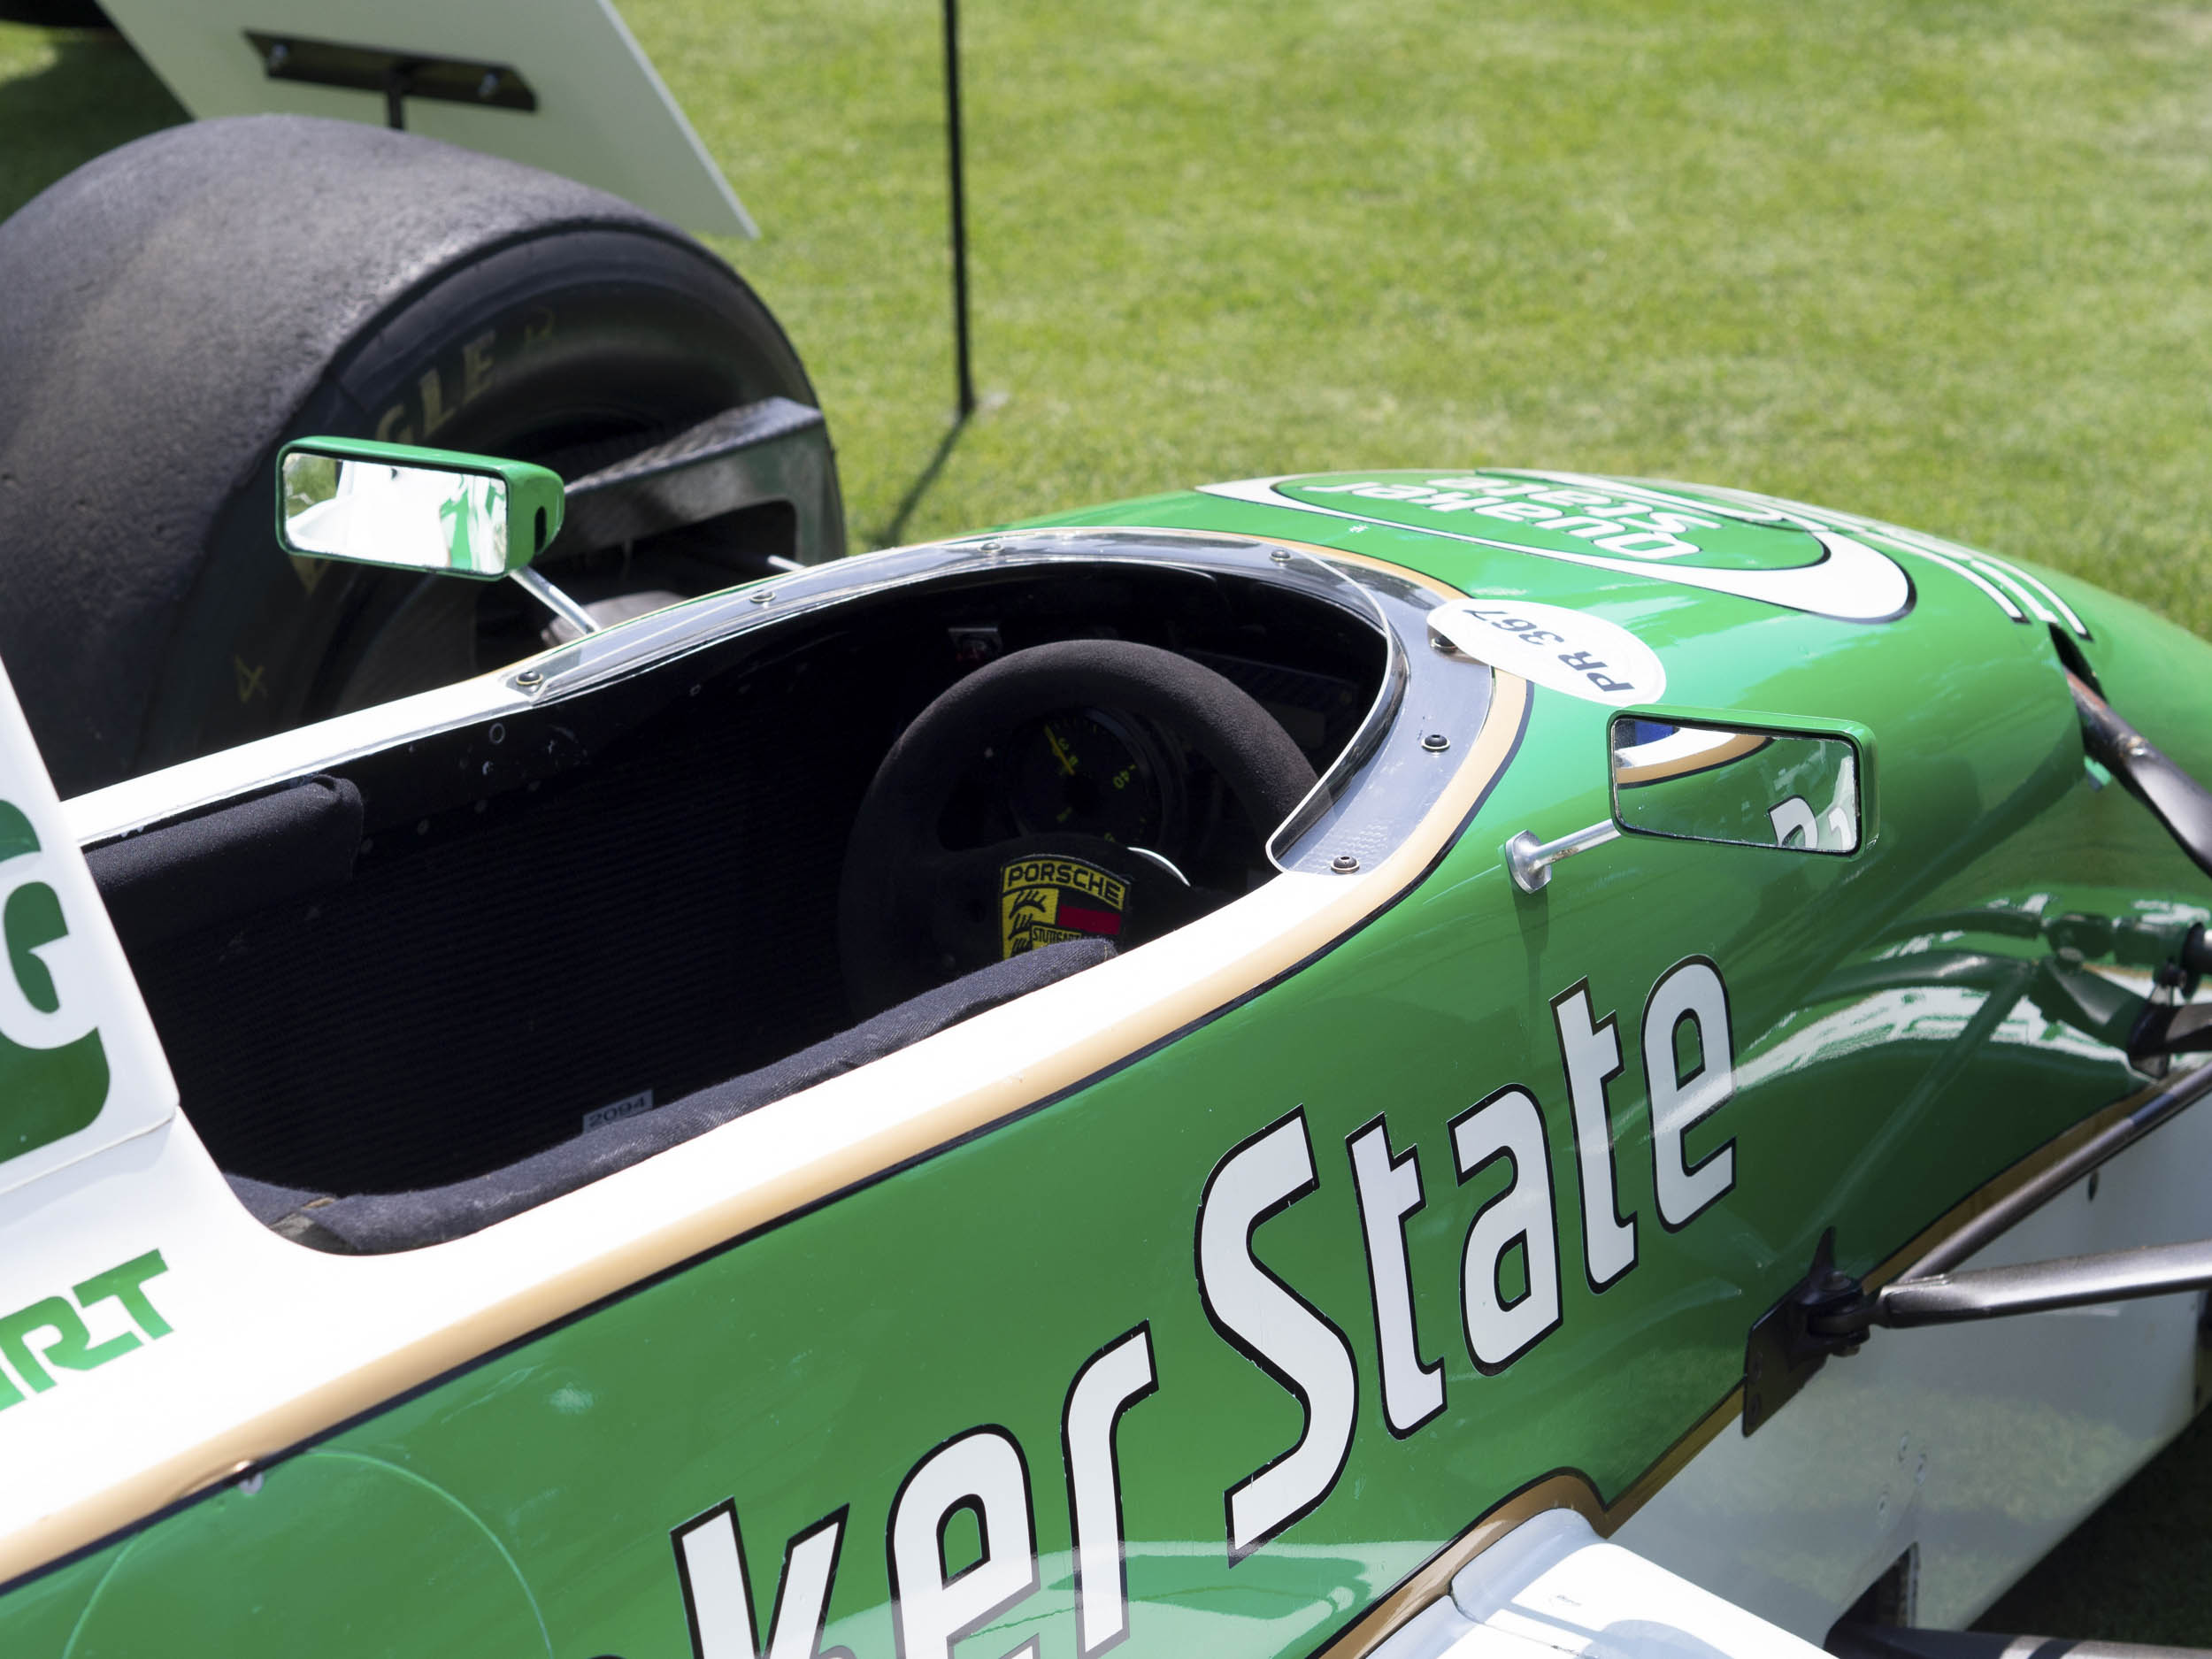 1989 Porsche Indy - Quaker State by March cockpit